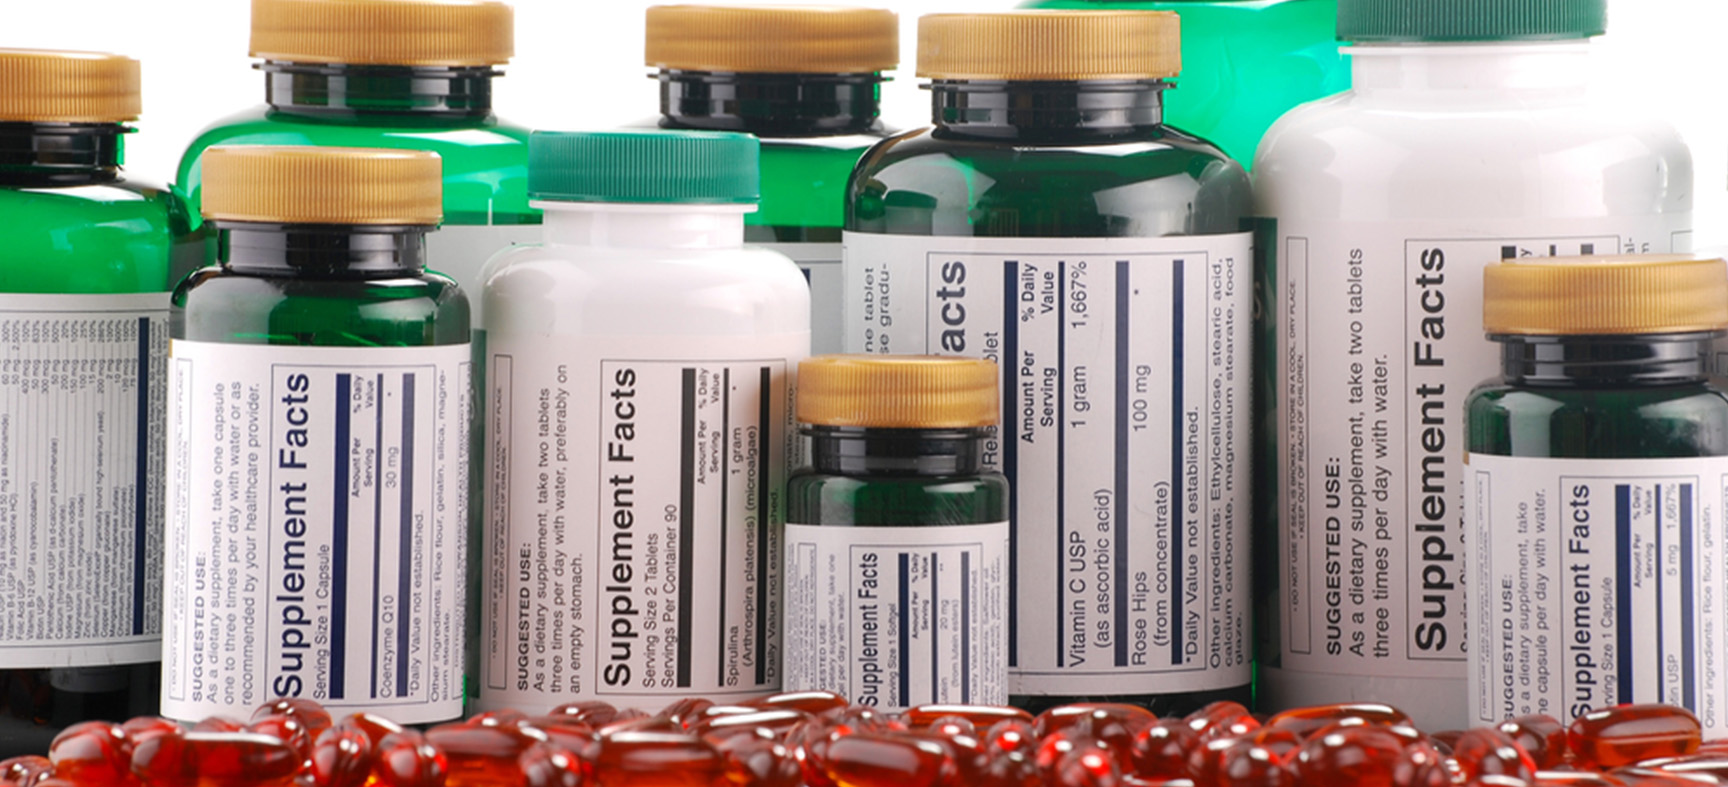 Are Supplements Really Necessary?